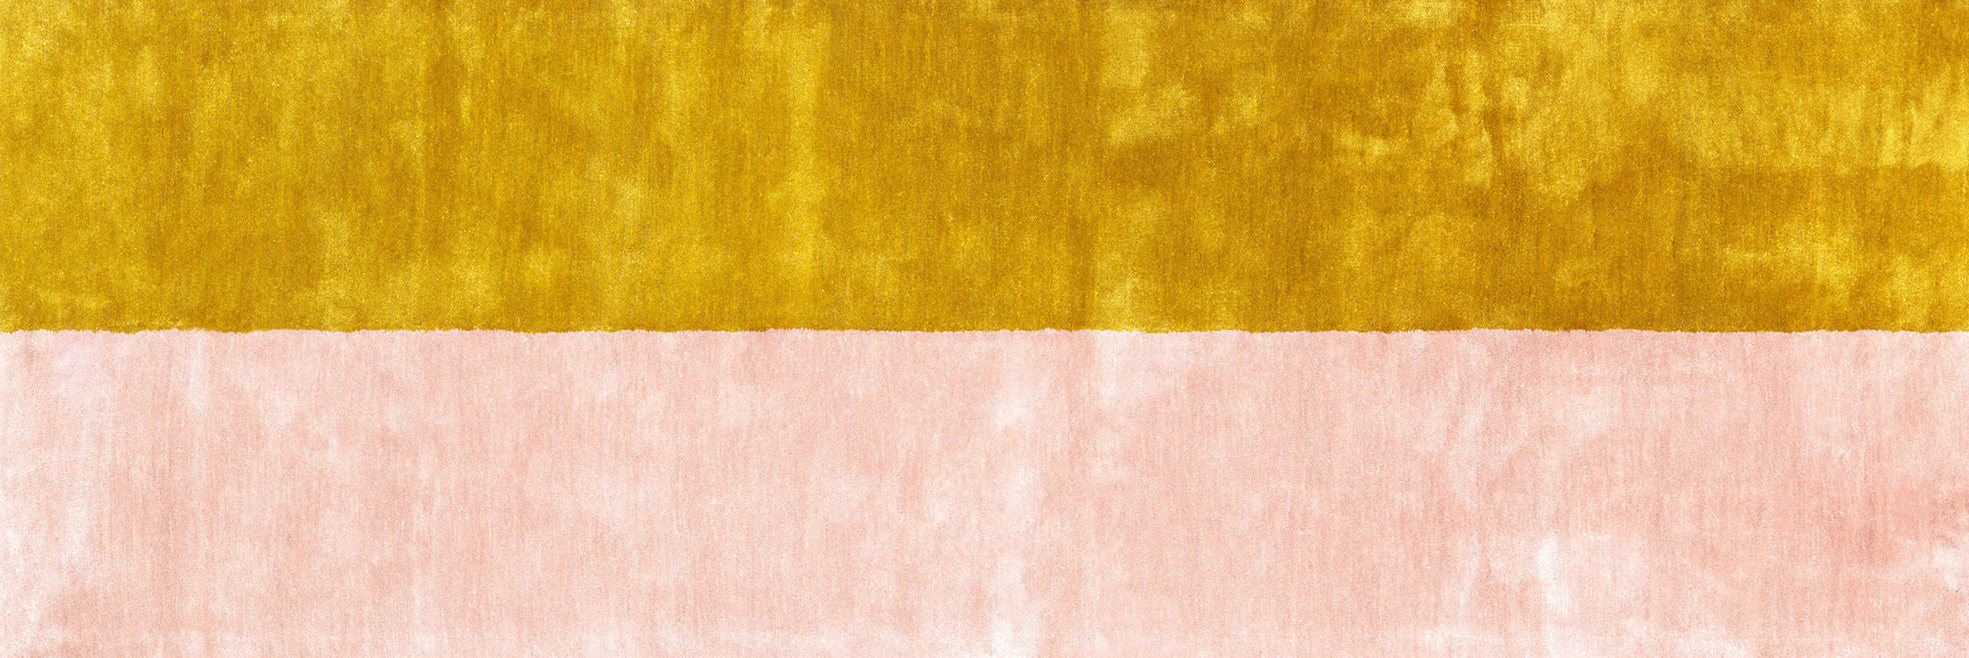 Yellow / Light Pink